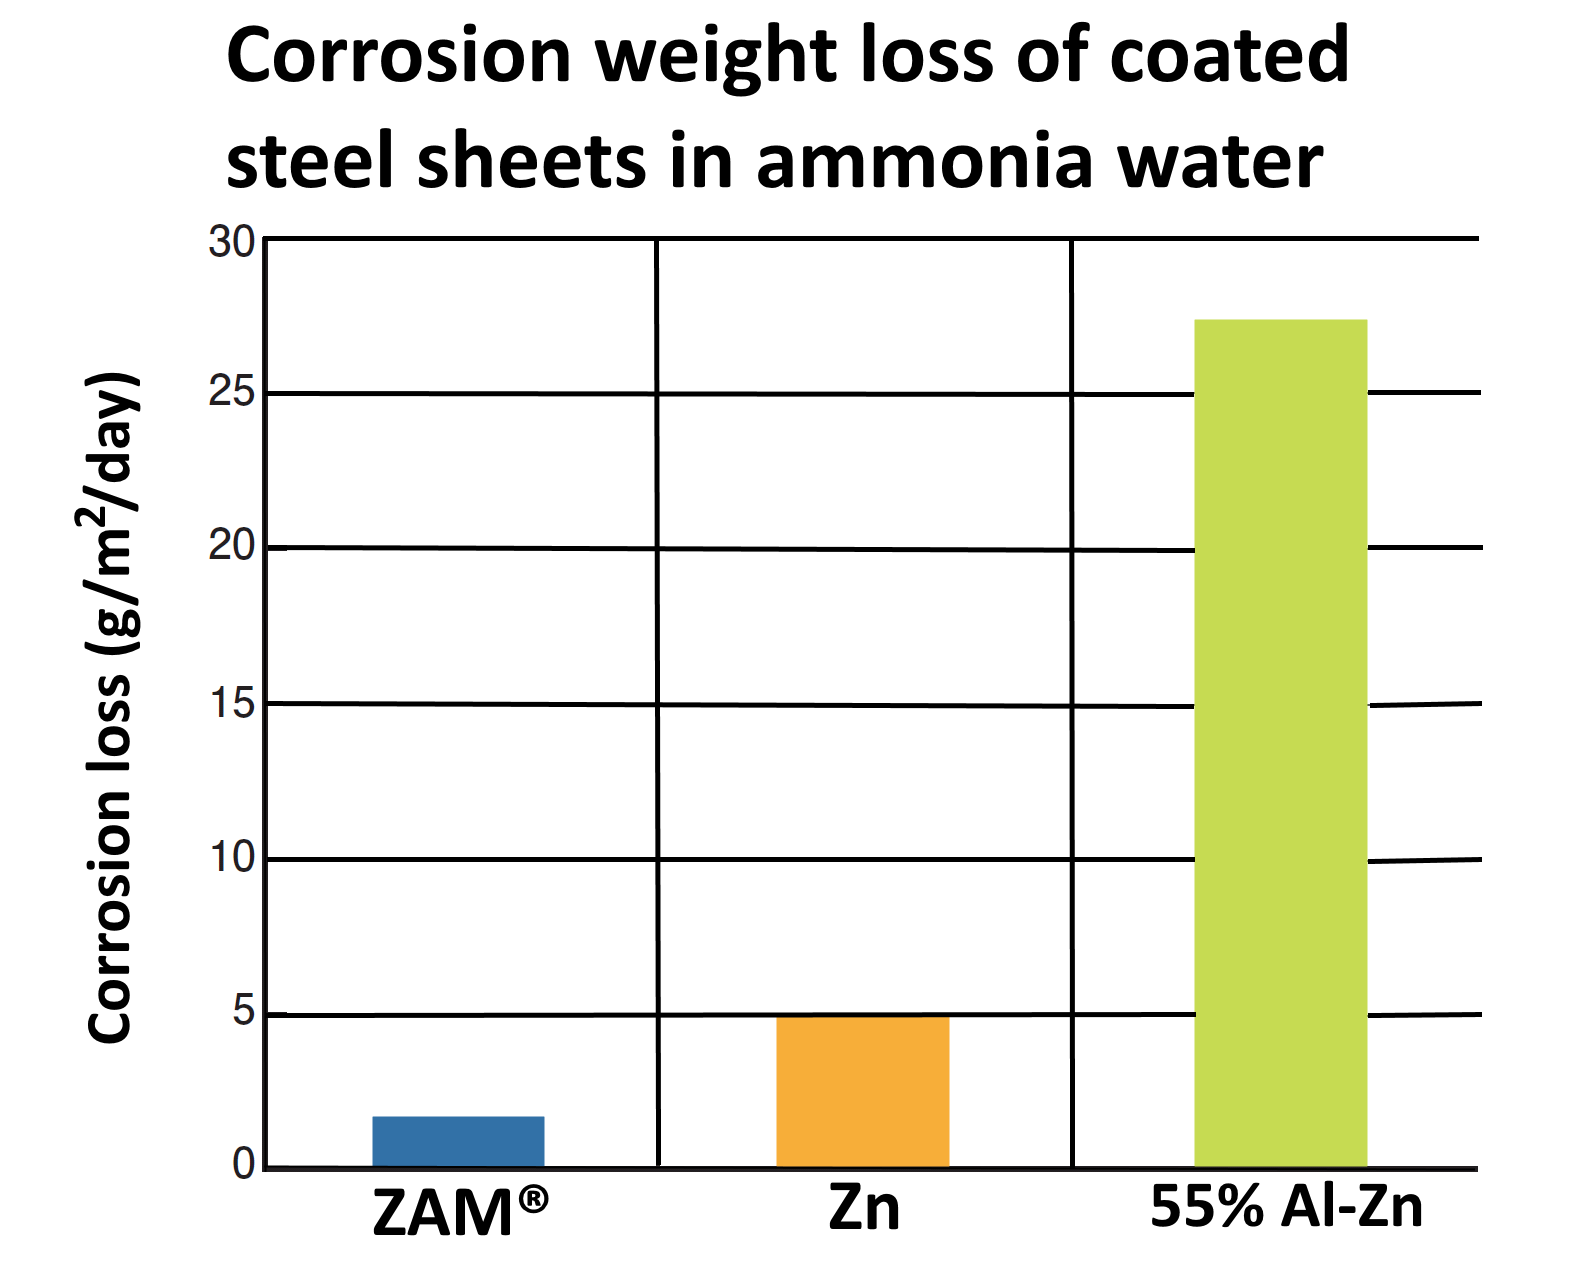 Graph comparing corrosion weight loss of ZAM® in ammonia water to other coated steel sheets